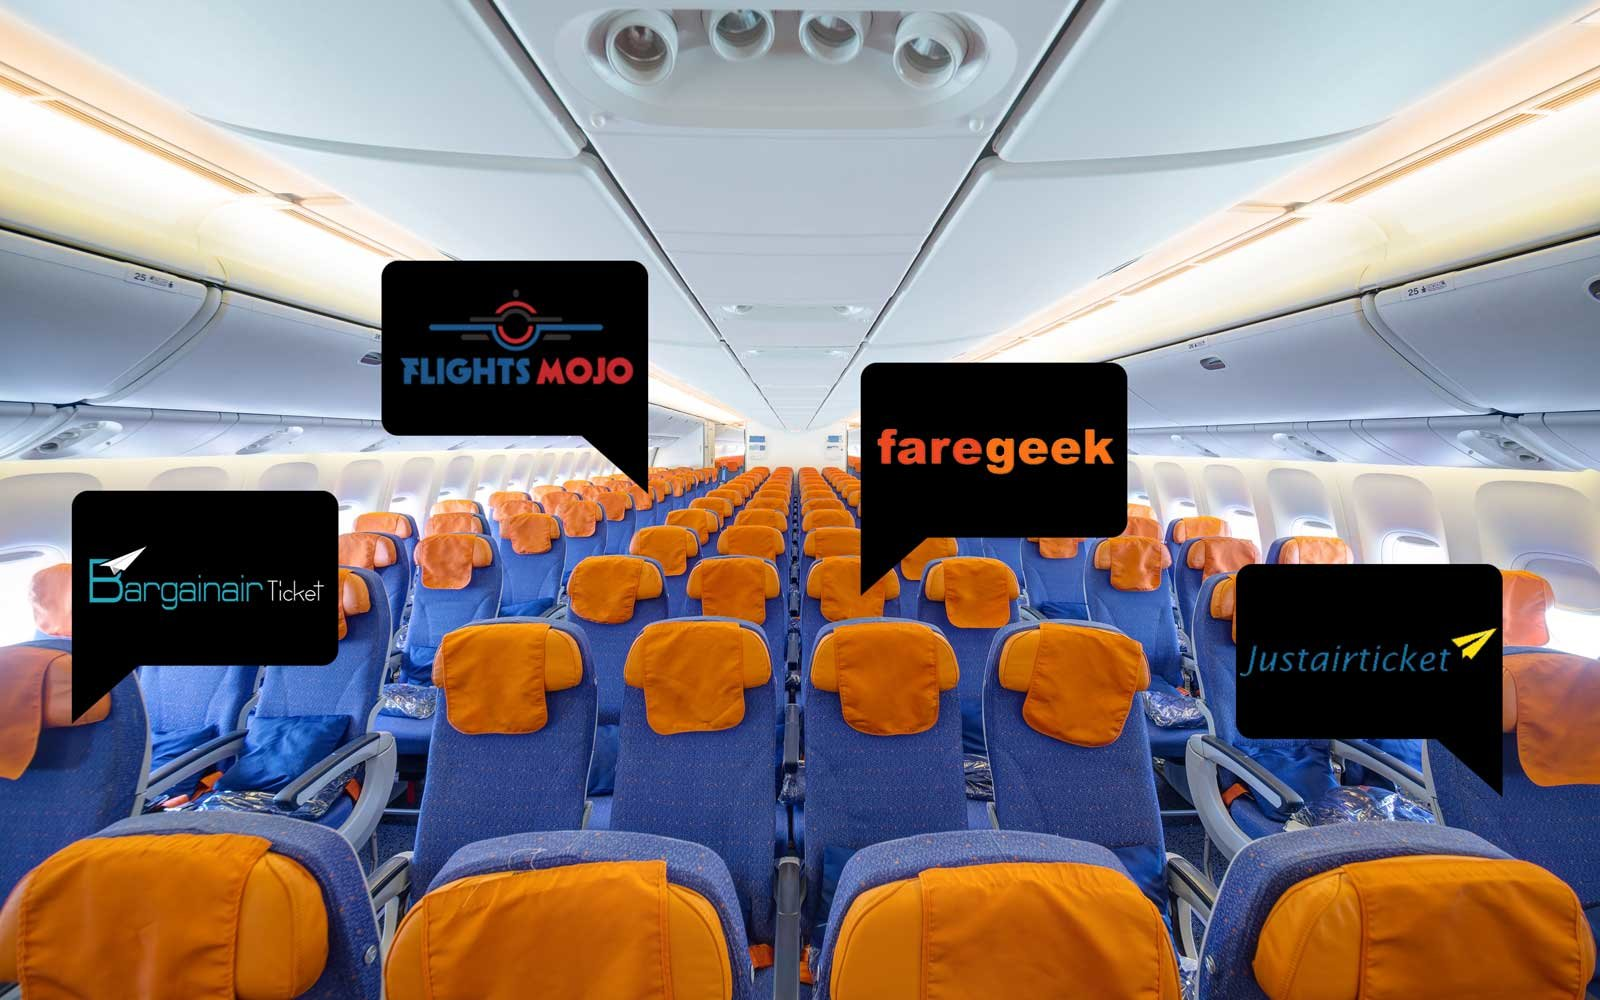 Use these third party sites to book your flight